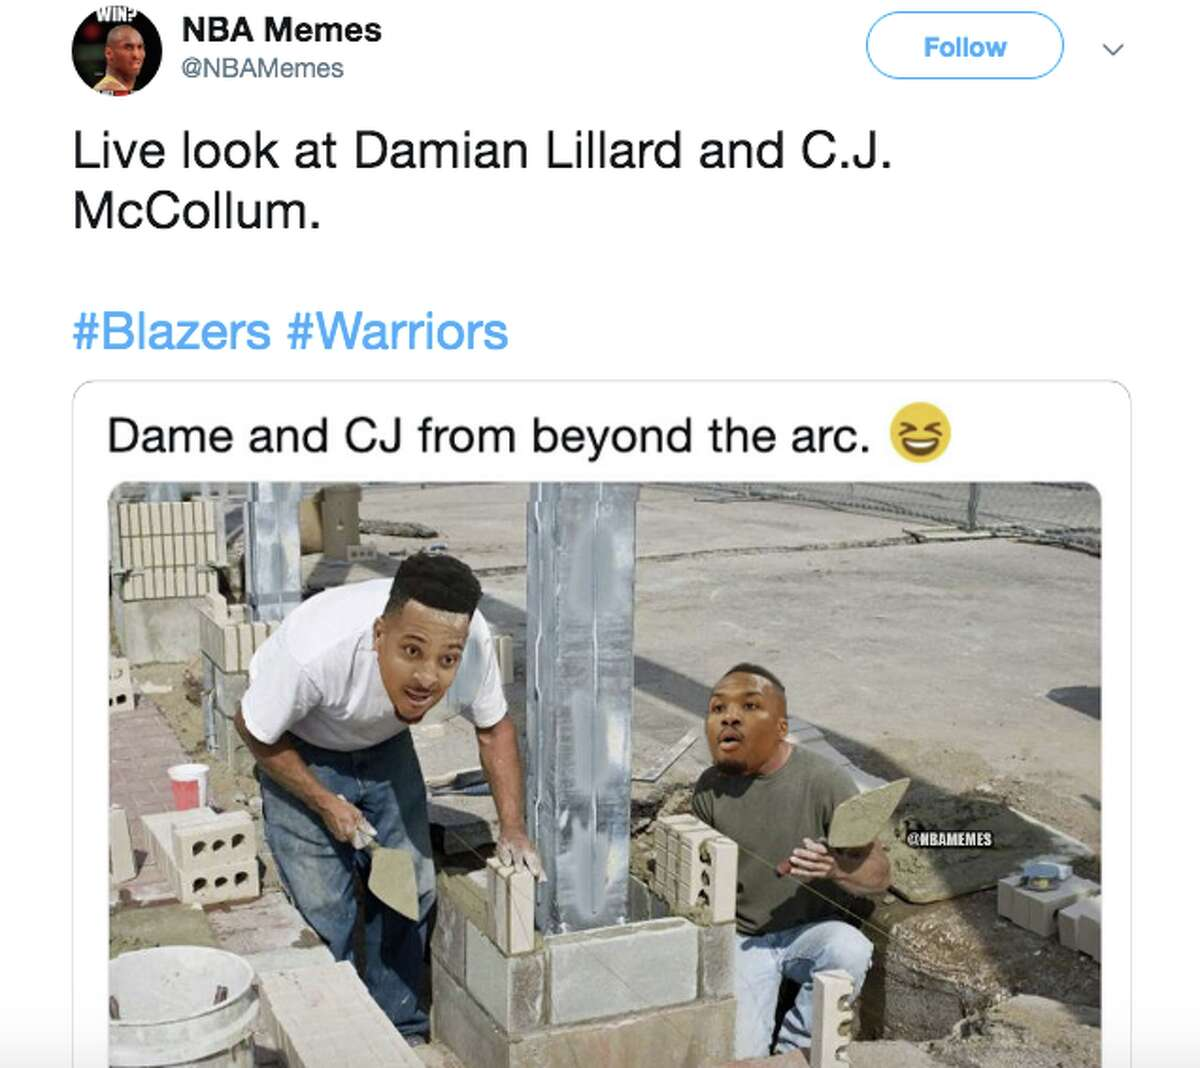 The Portland Trail Blazers were brutally roasted after blowing another double-digit lead to the Warriors.